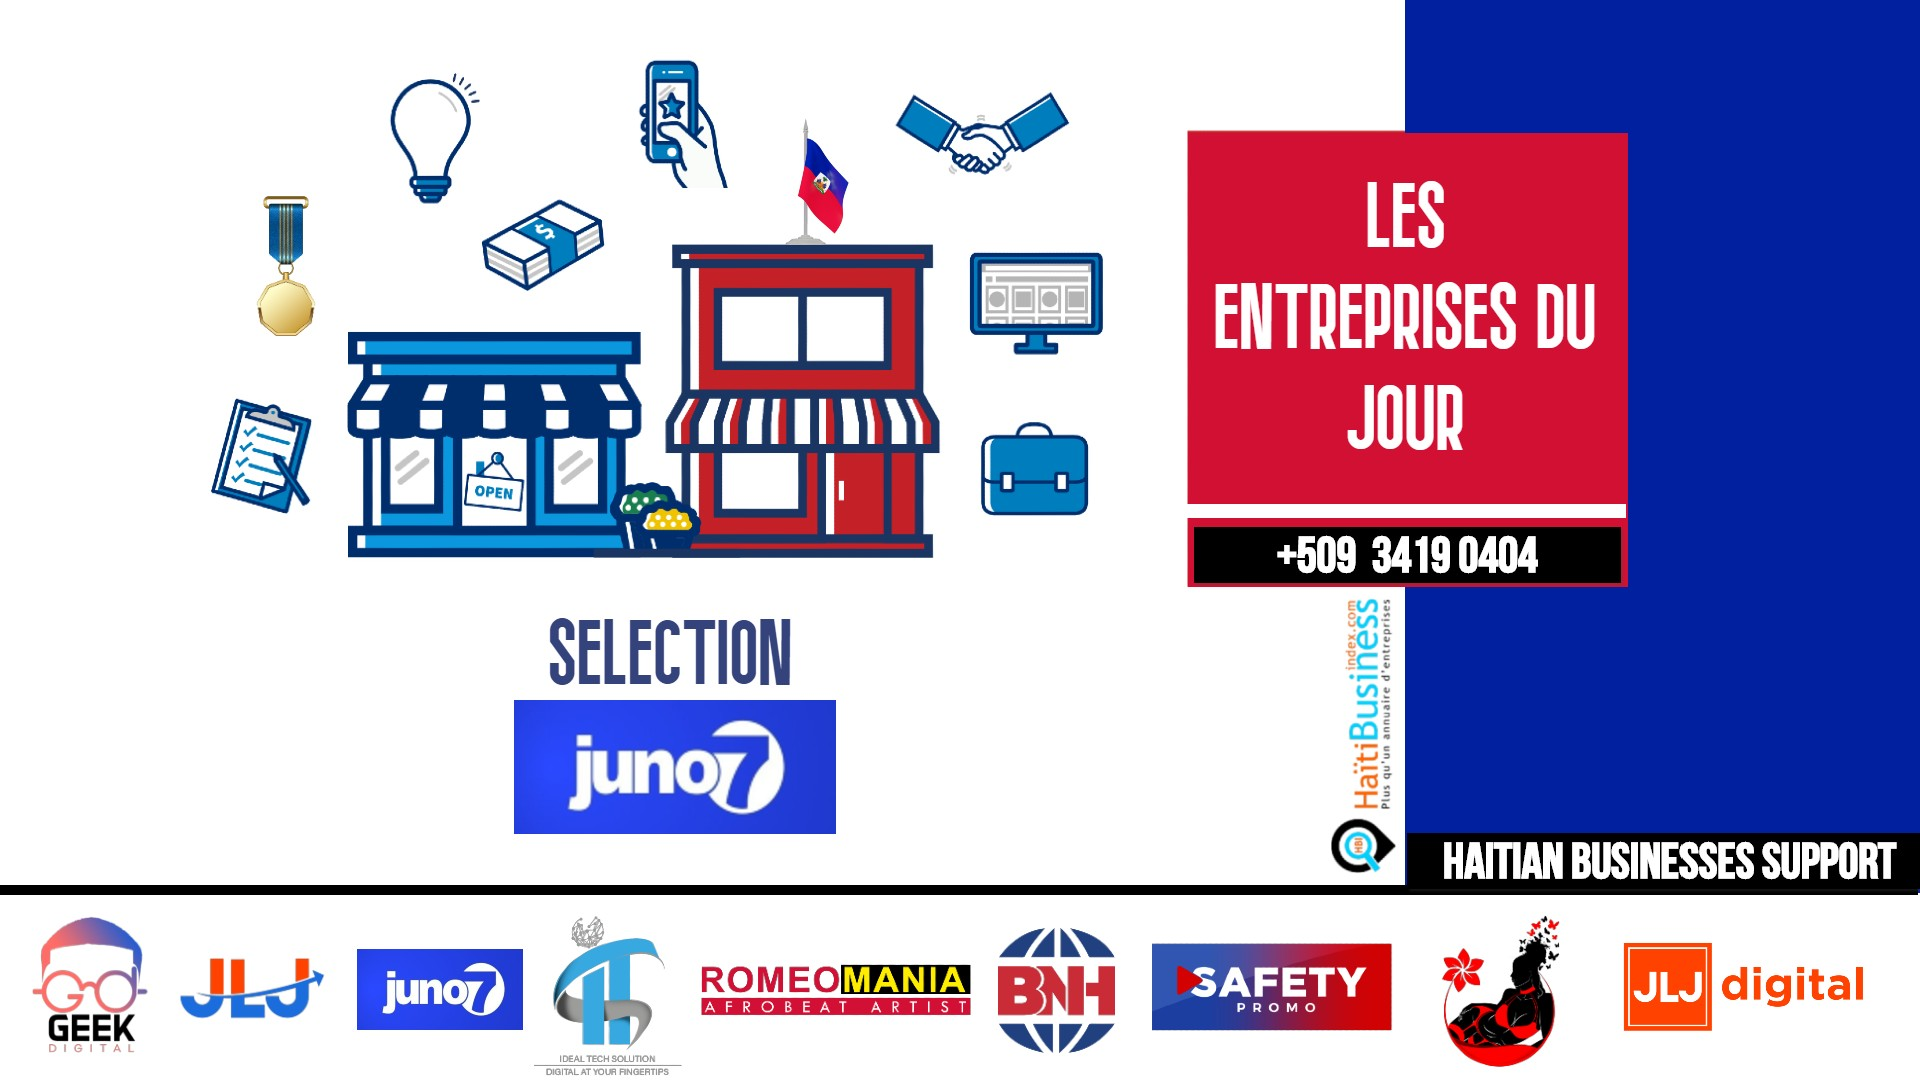 Choix Juno7 du 10 Aout 2020 - Ideal Technology Solutions